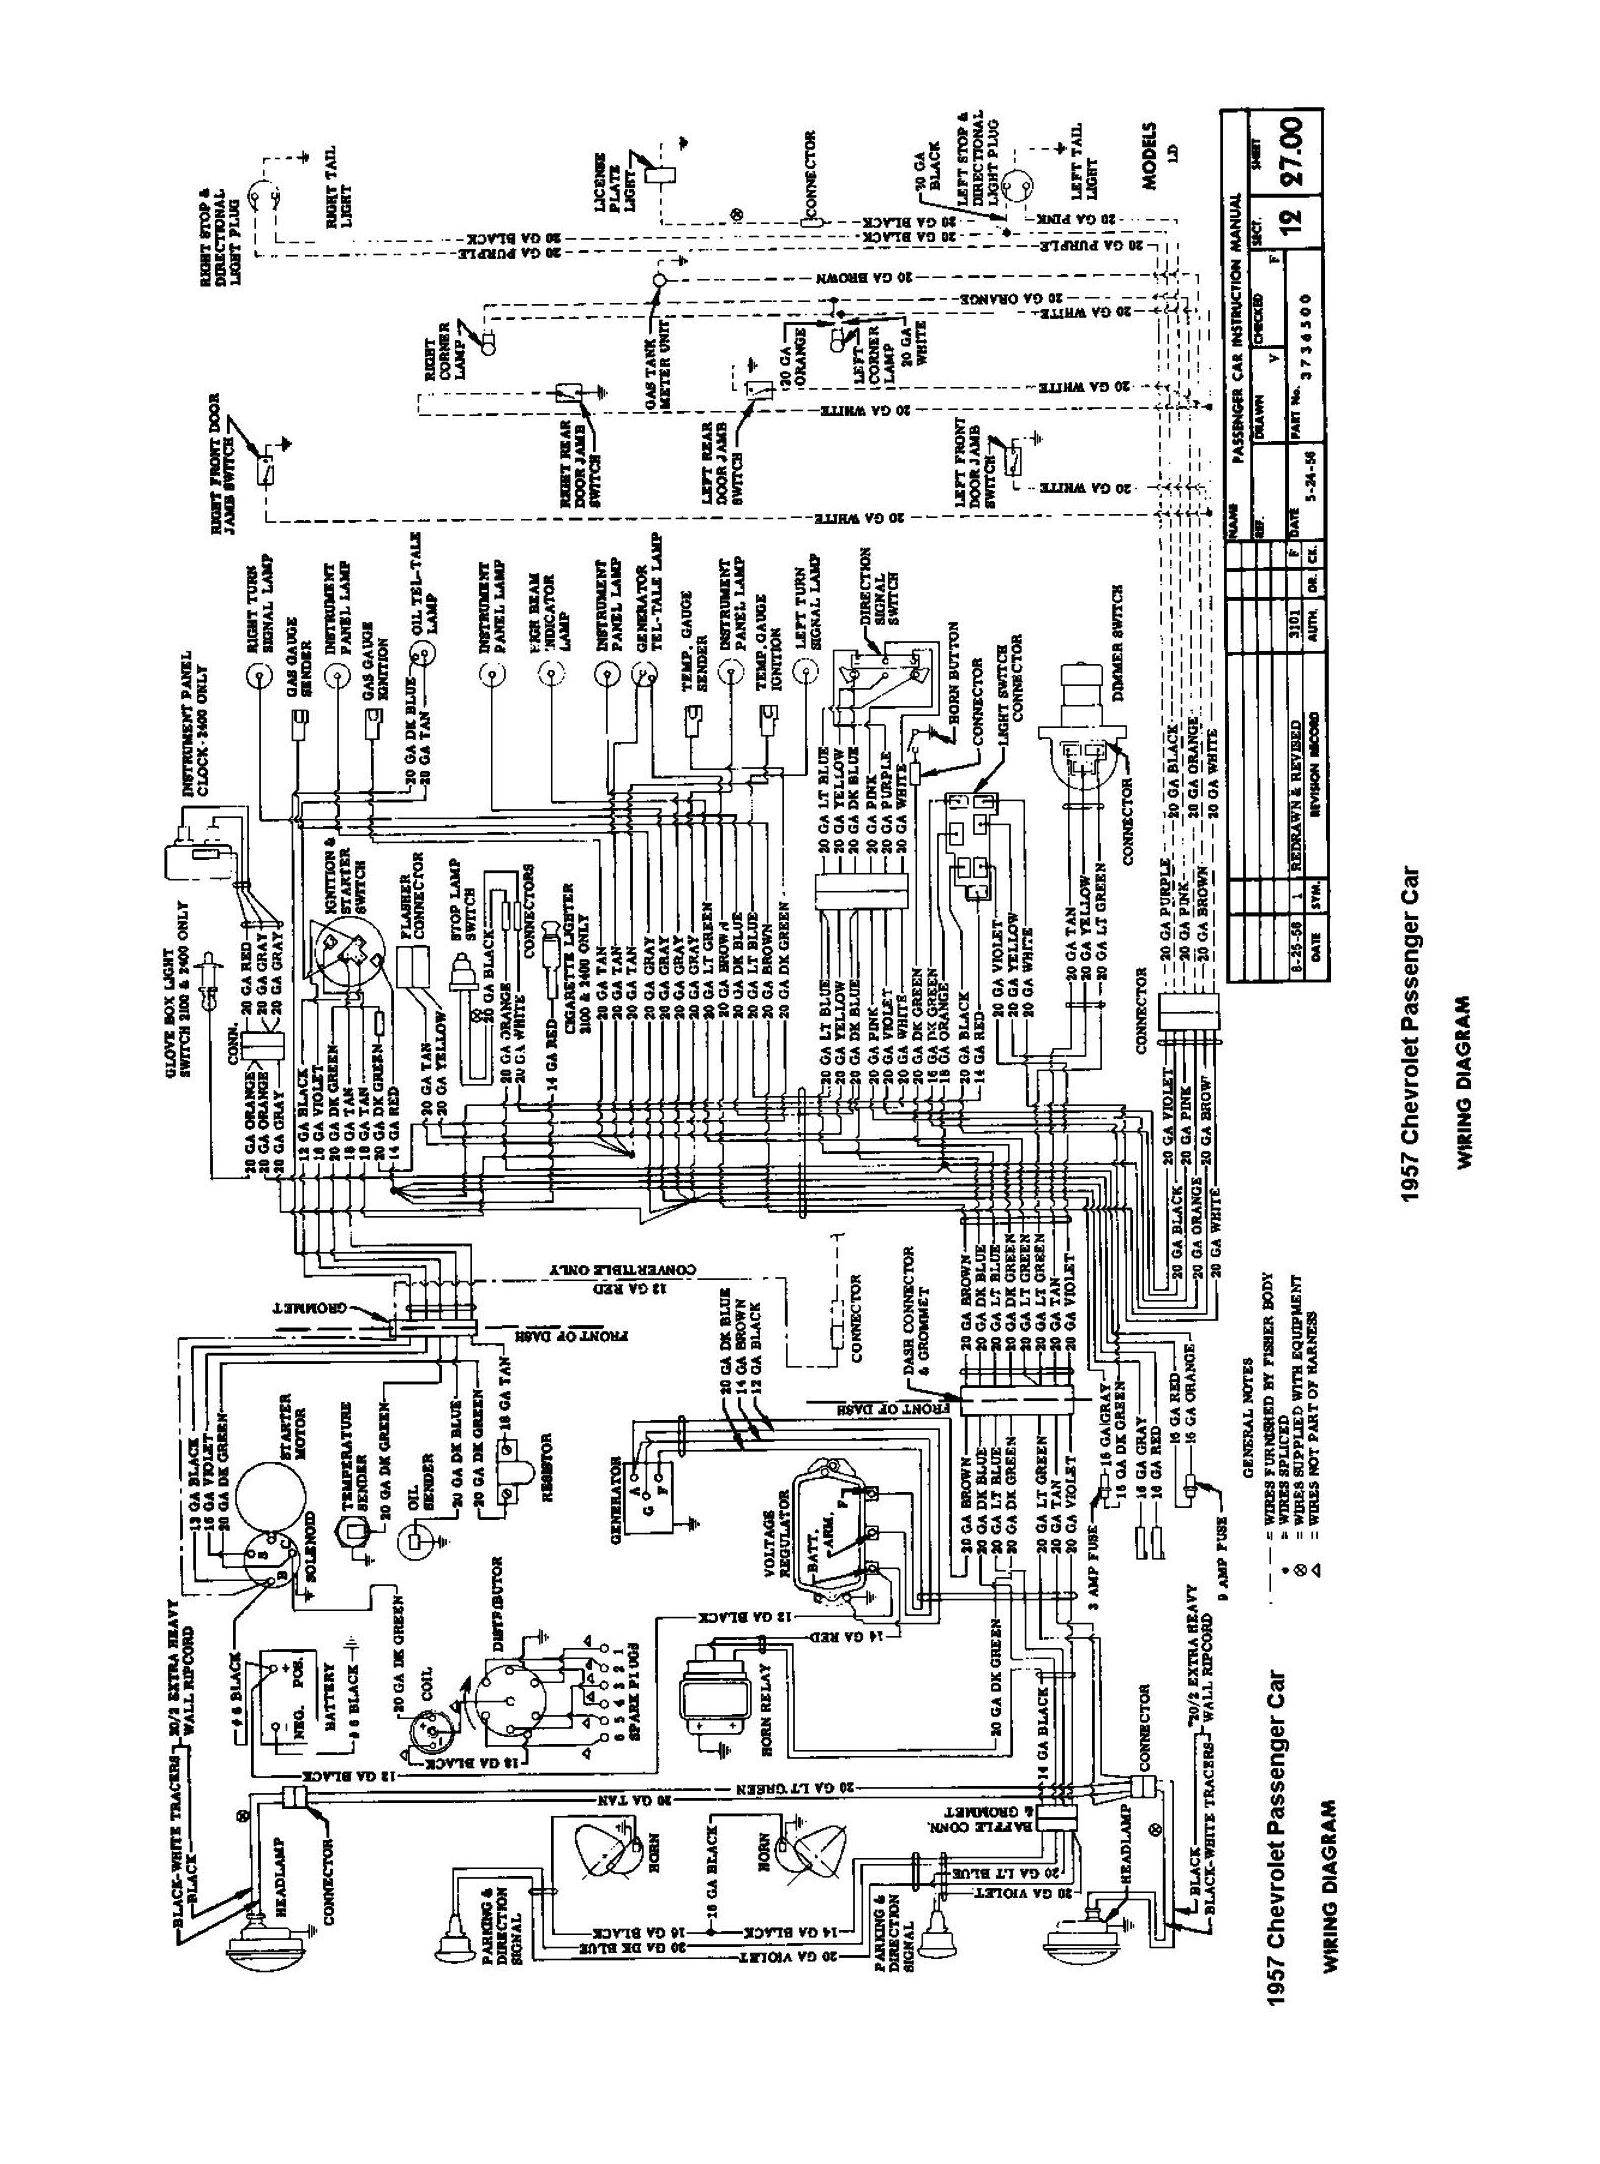 Car on 1955 Chevy Truck Wiring Diagram